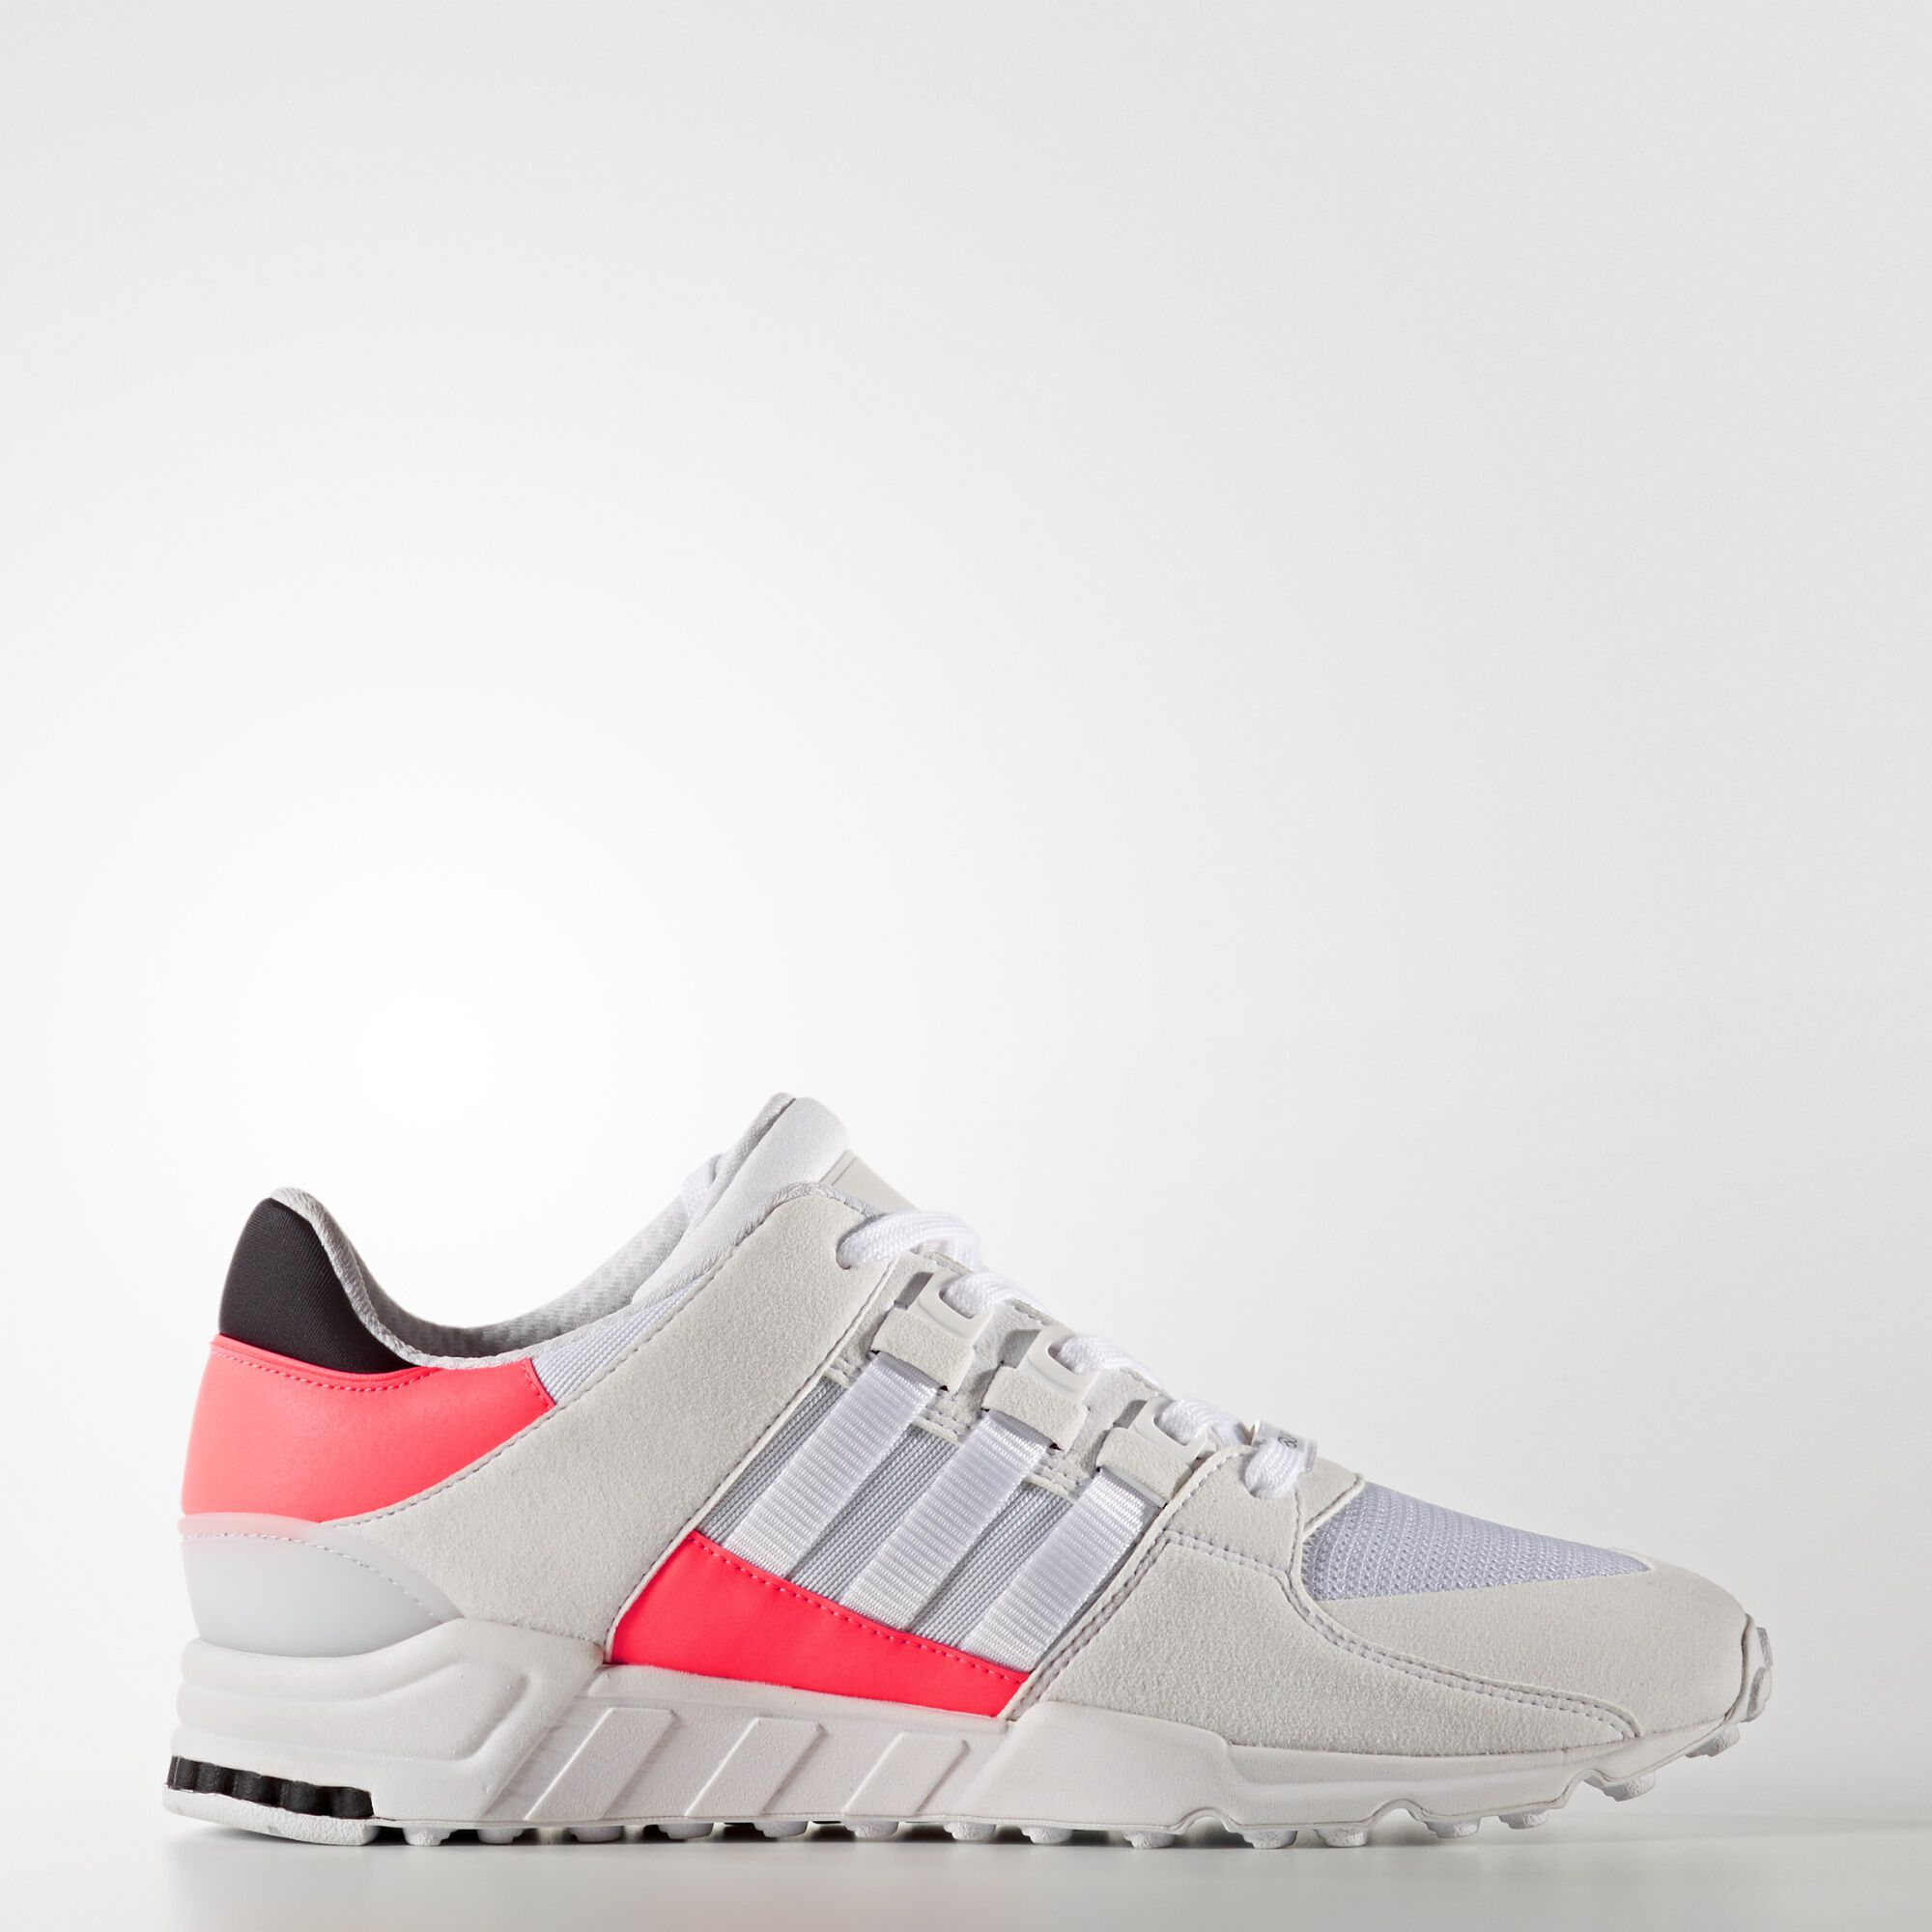 Triple White Drapes The adidas EQT Support Primeknit KicksOnFire